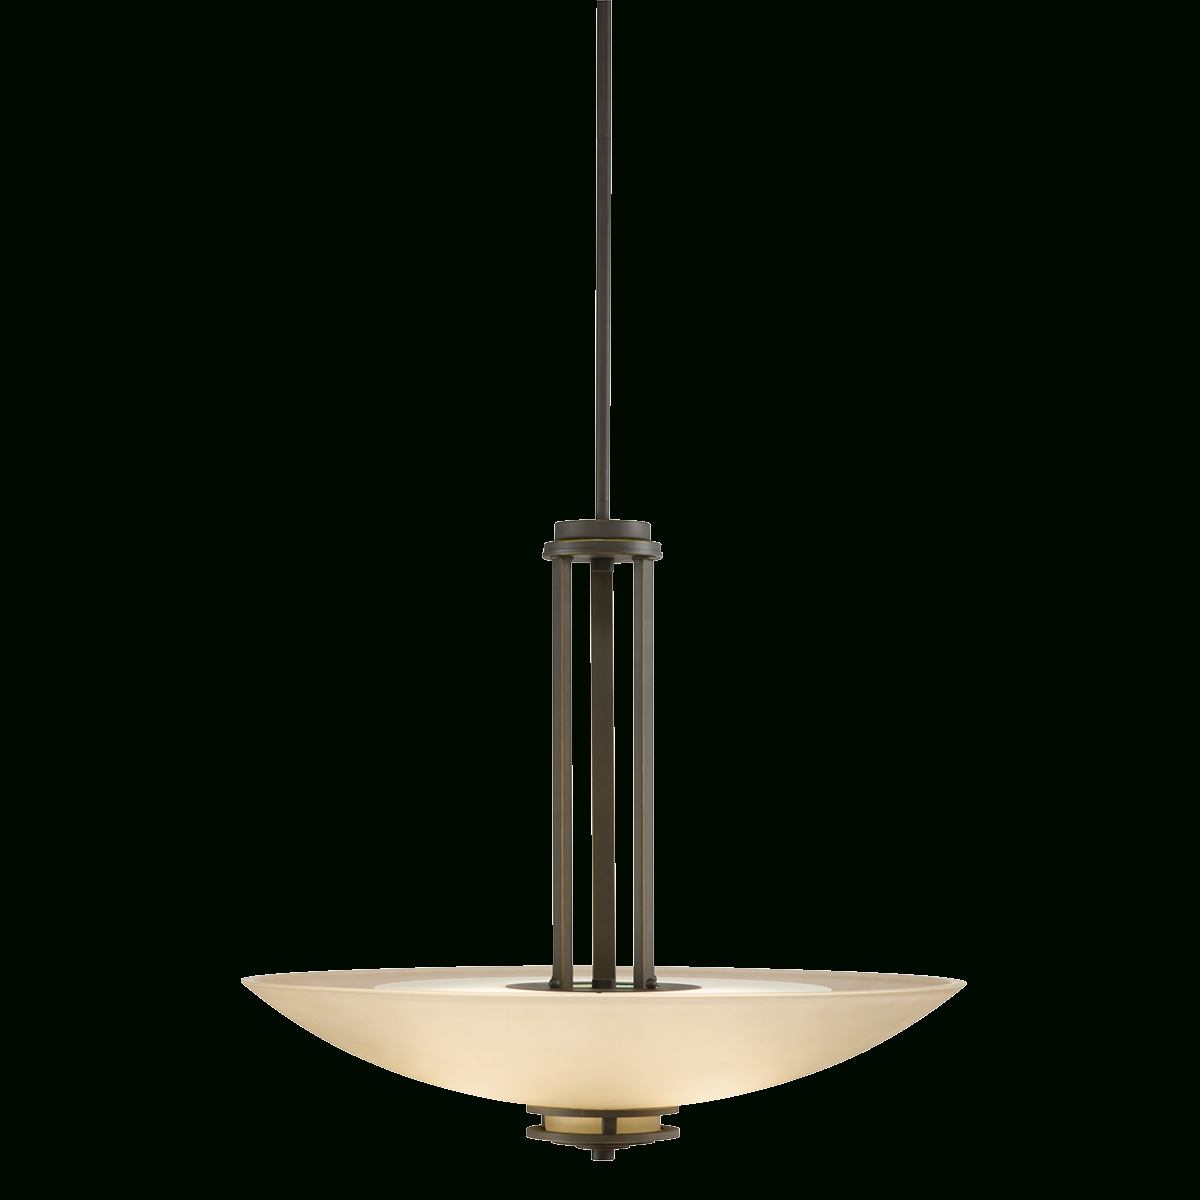 Transitional 3 Light Inverted Pendant In Olde Bronze - Hendrik inside Inverted Pendant Lighting (Image 14 of 15)